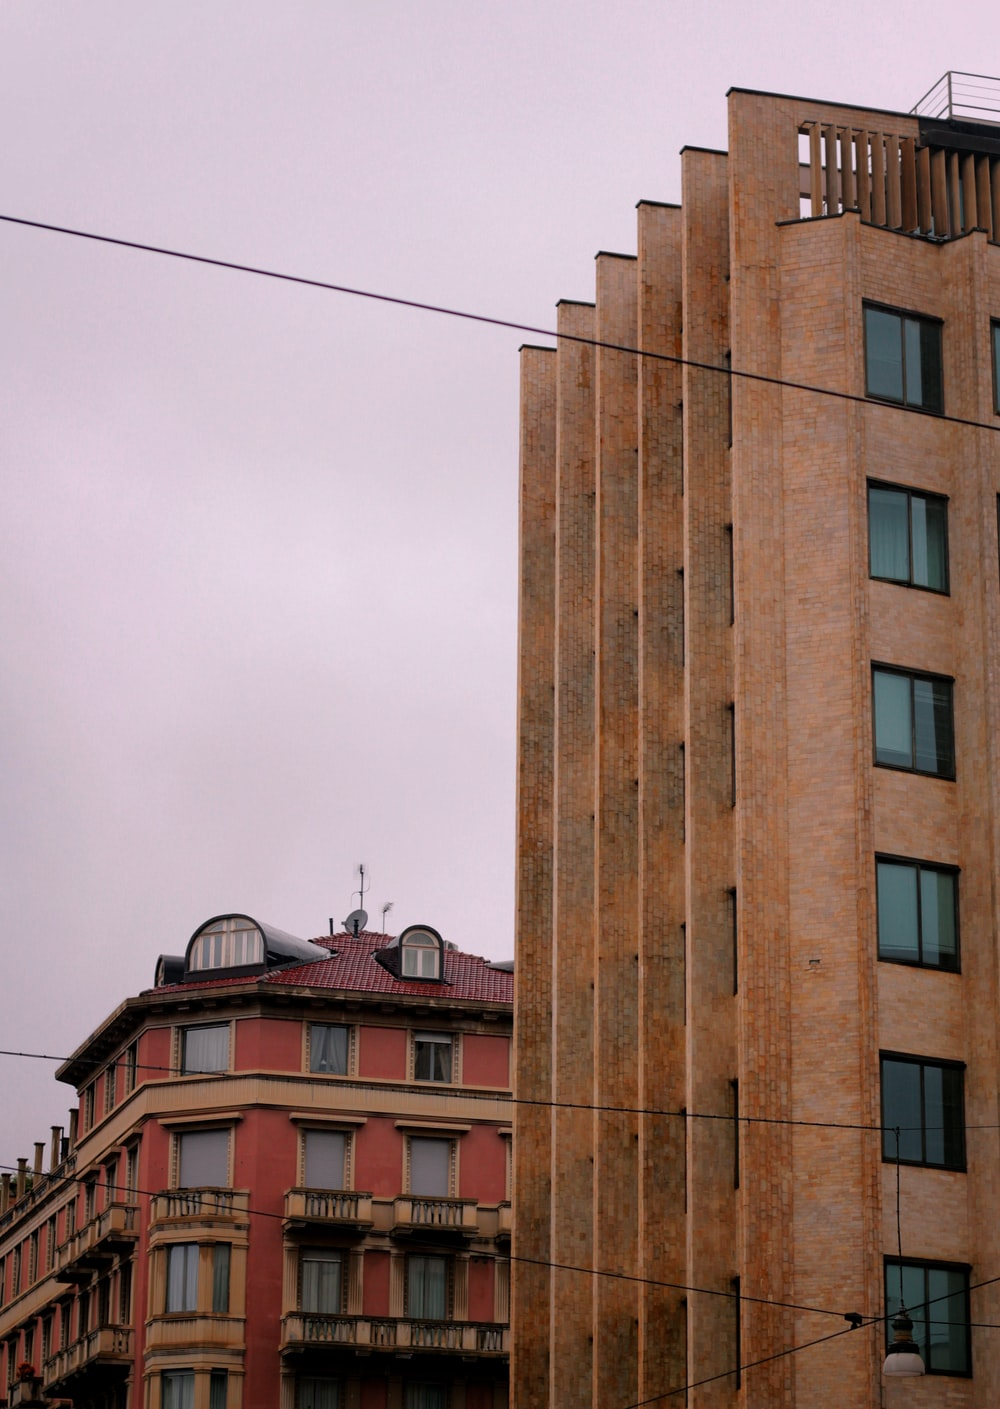 brown concrete building under white sky during daytime